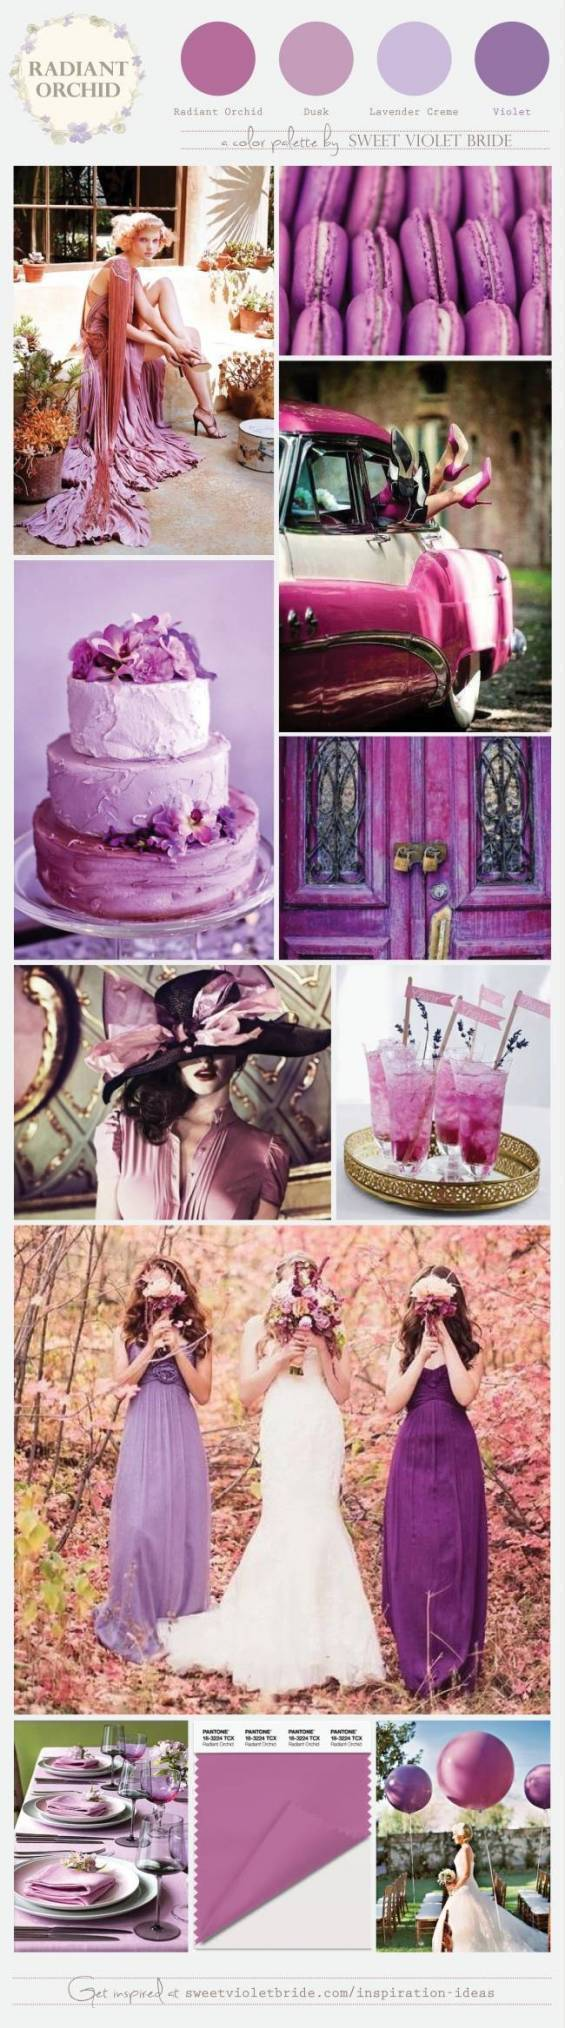 Wedding Color Palette: Radiant Orchid